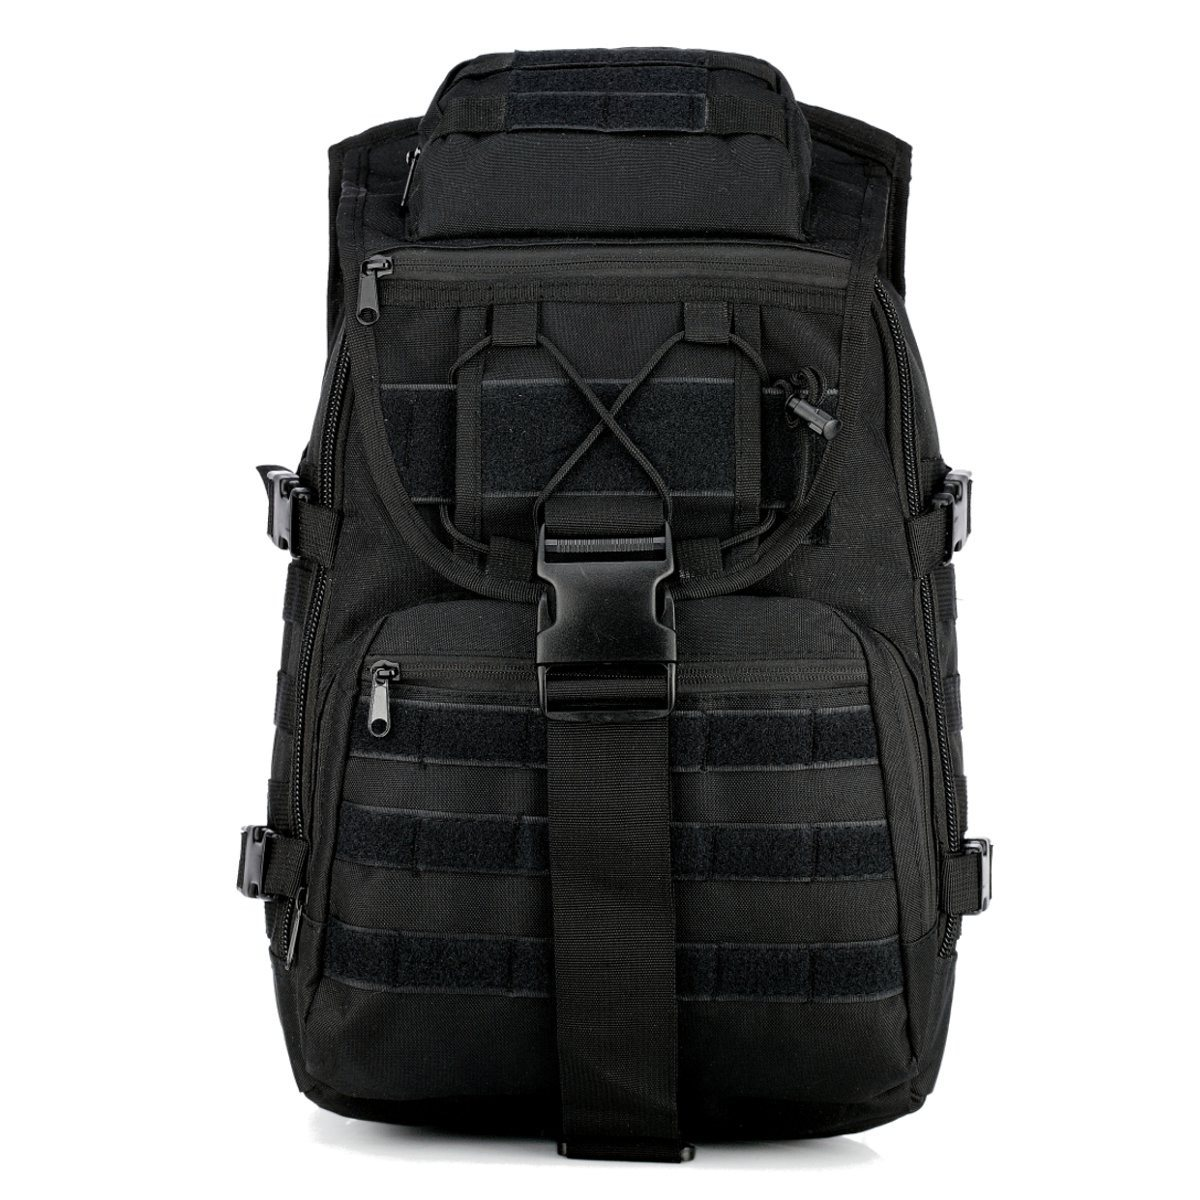 40L Outdoor Nylon Military Tactical Assault Backpack Camping Hiking Trekking Camouflage Bag Travel Backpack 10 color options<br><br>Aliexpress